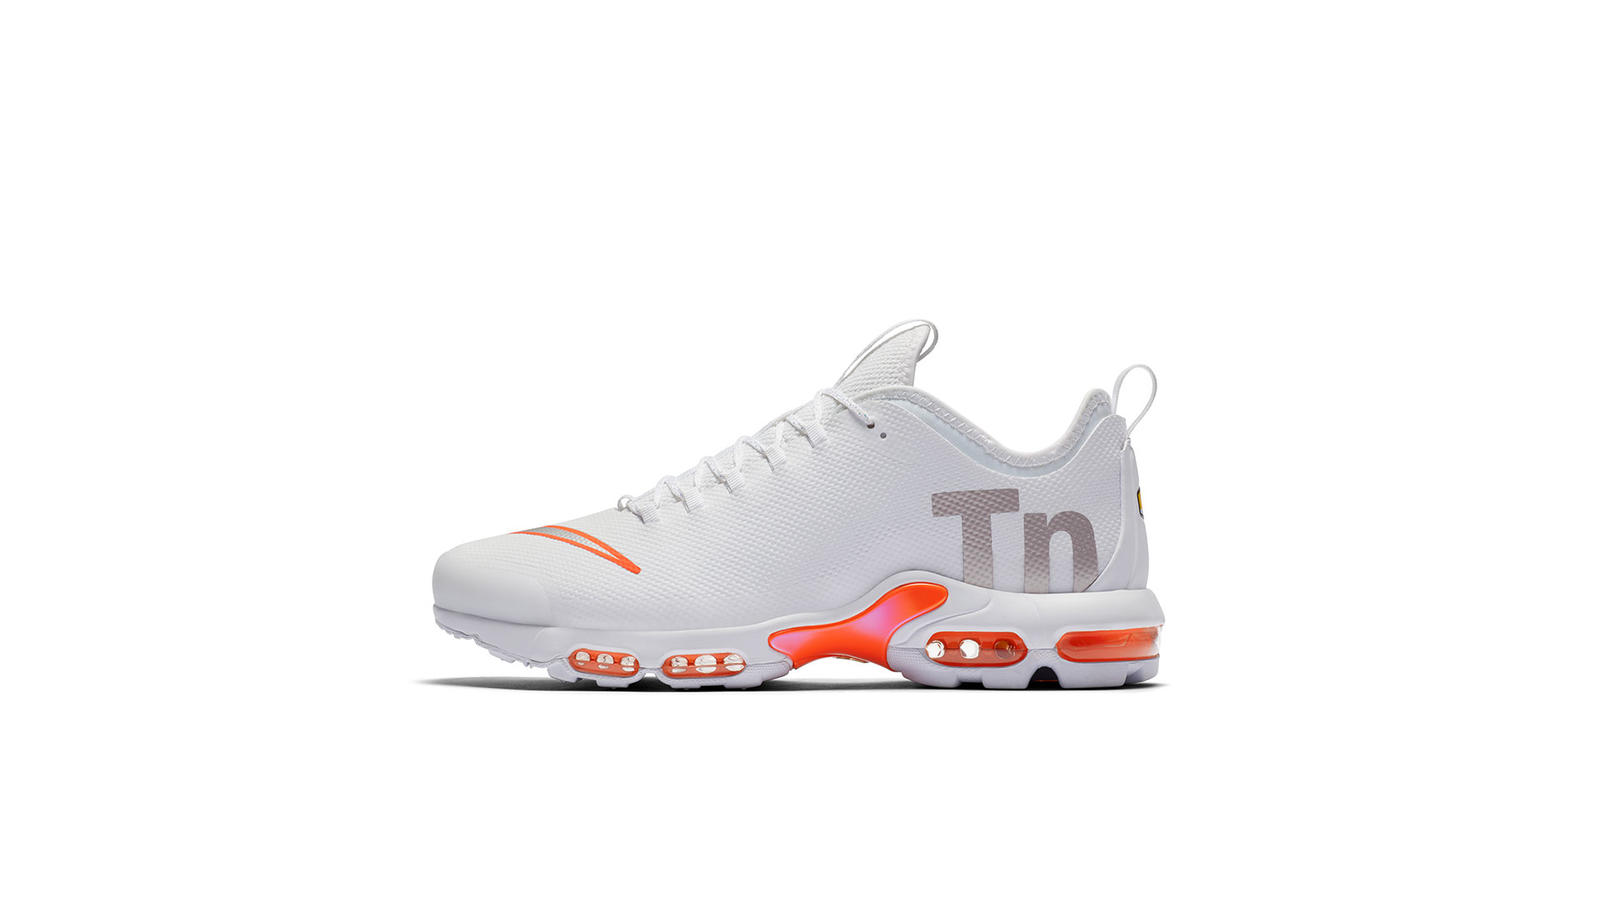 brand new 84954 d8df7 May 16, 2018 - The Nike Air Max Plus hit shelves in 1998 and launched into  global popularity with its daring design and innovative manufacturing  background.